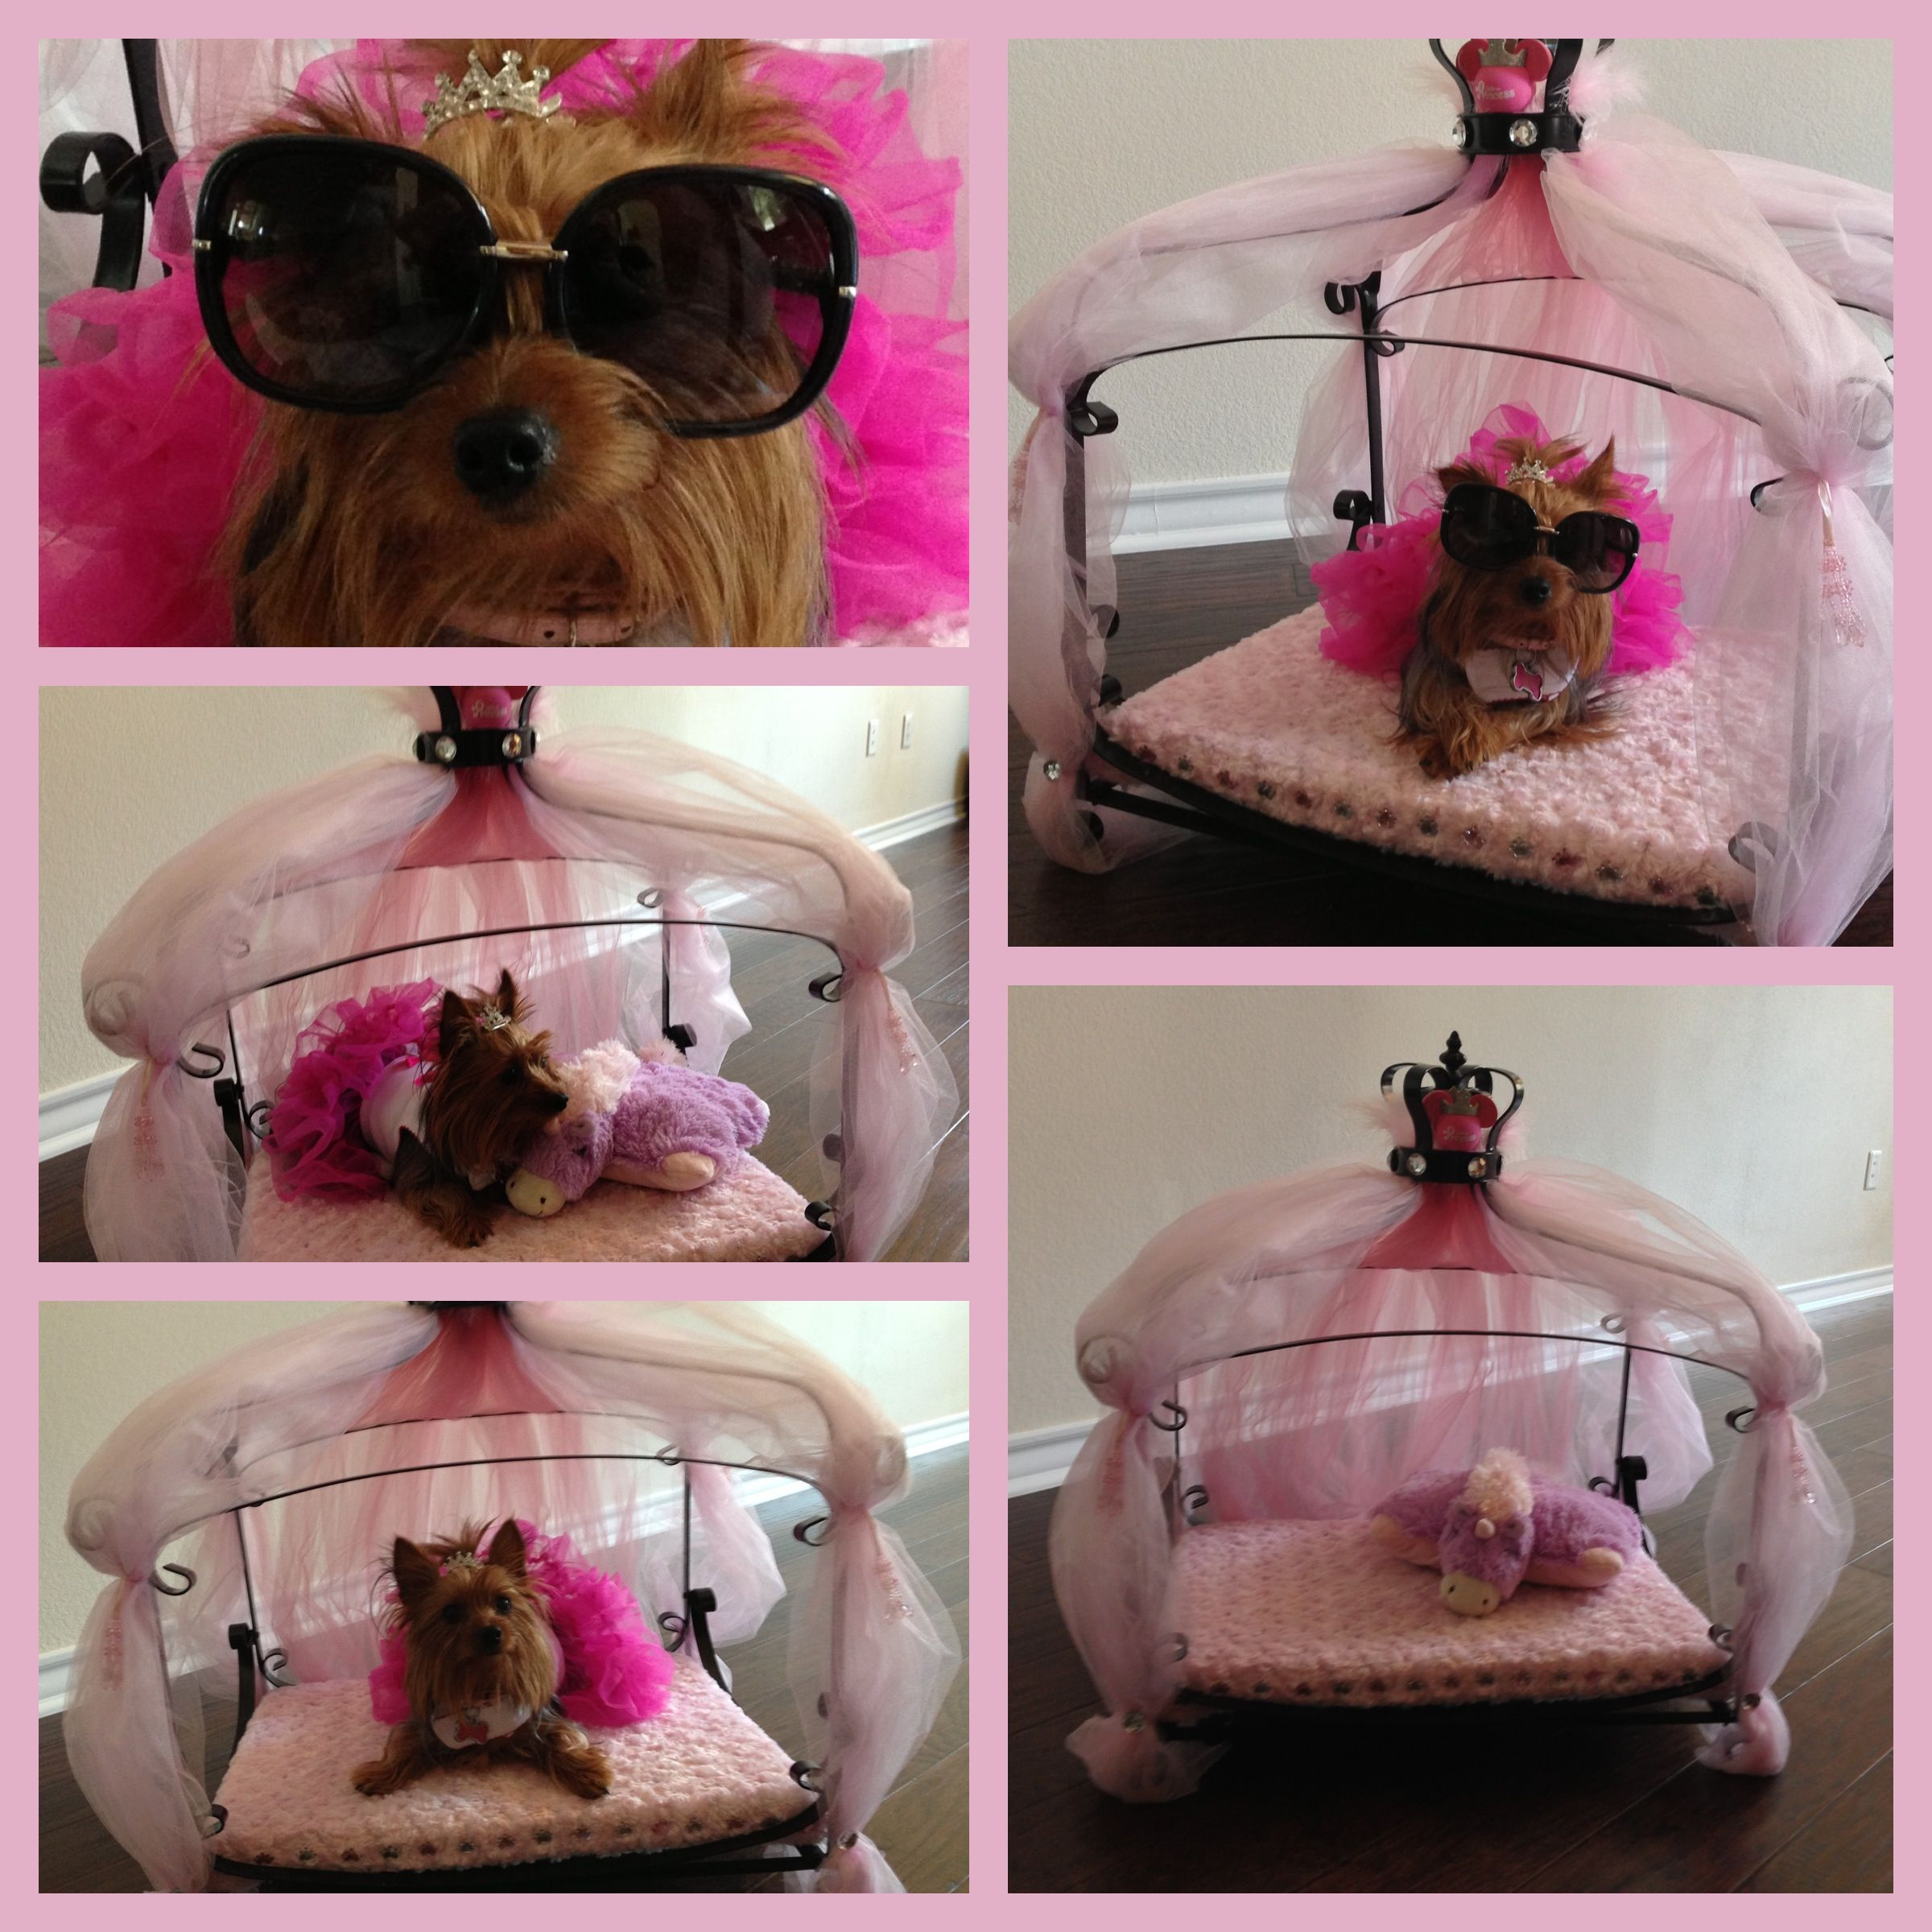 Yorkie Princess Bed Got The Bed At Amazon Went To Hobby Lobby For